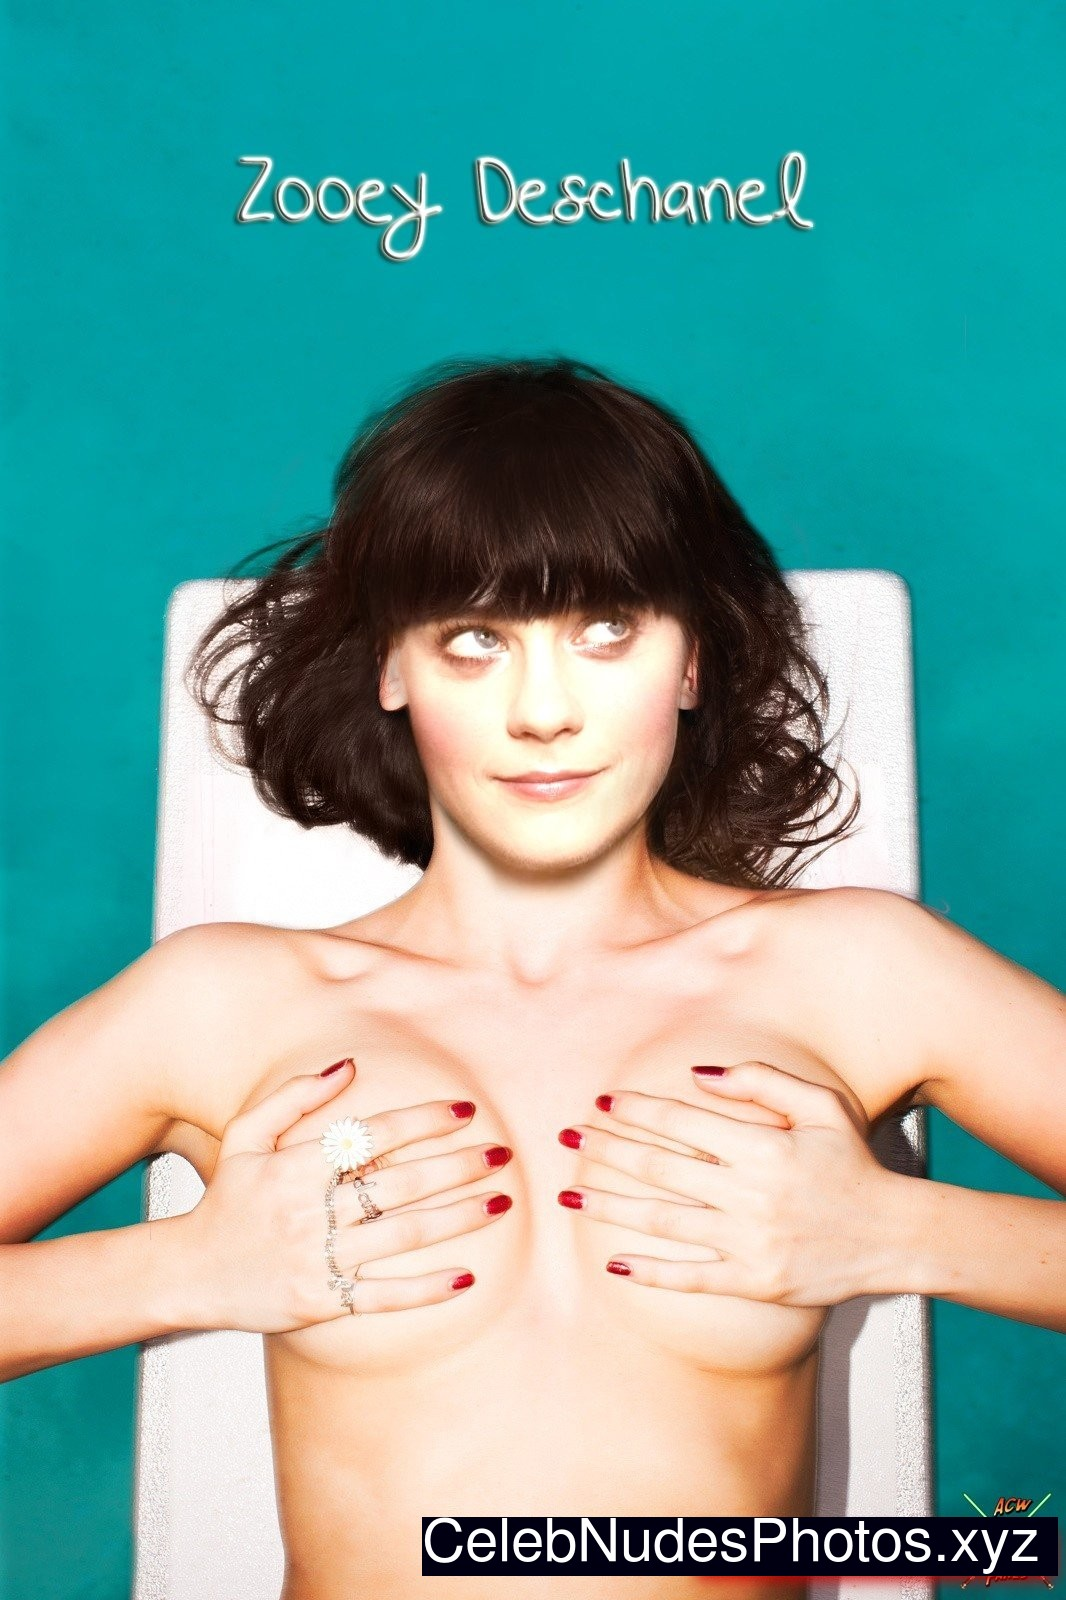 Zooey Deschanel naked celebrity pictures